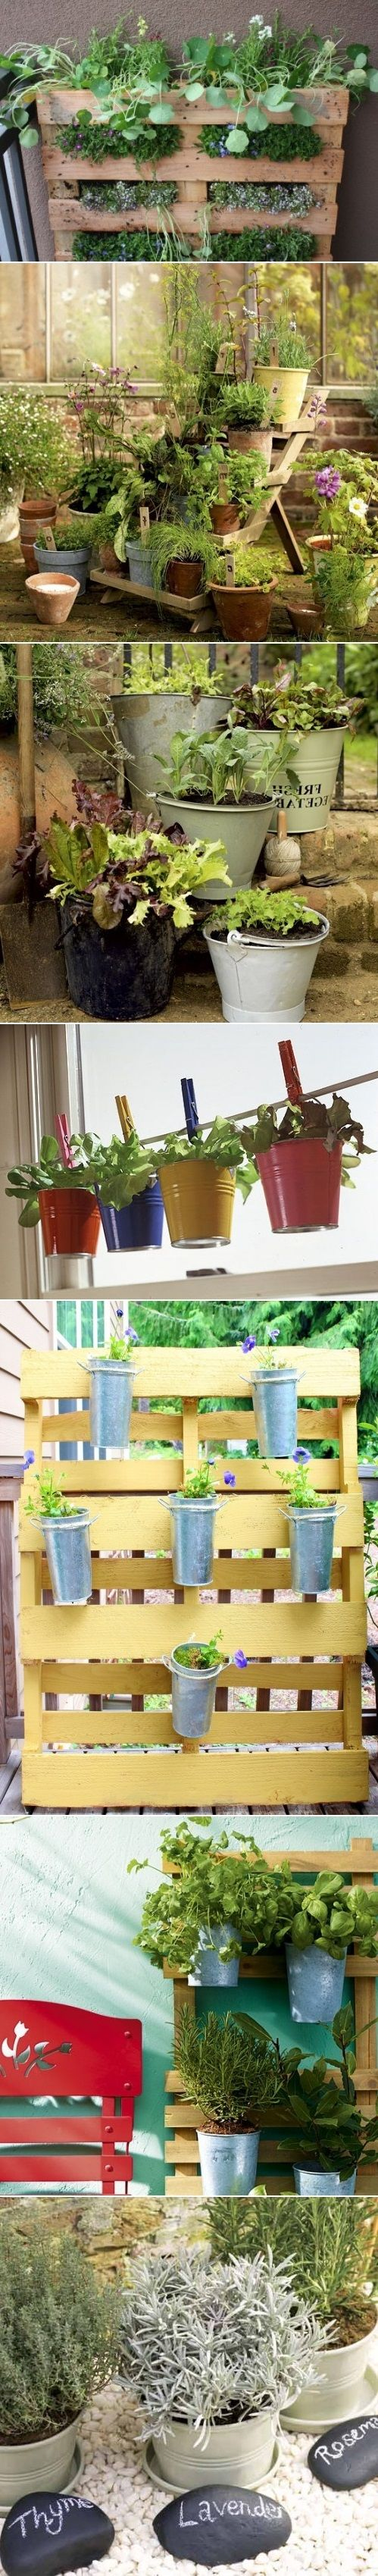 DIY Herb Gardens Ideas